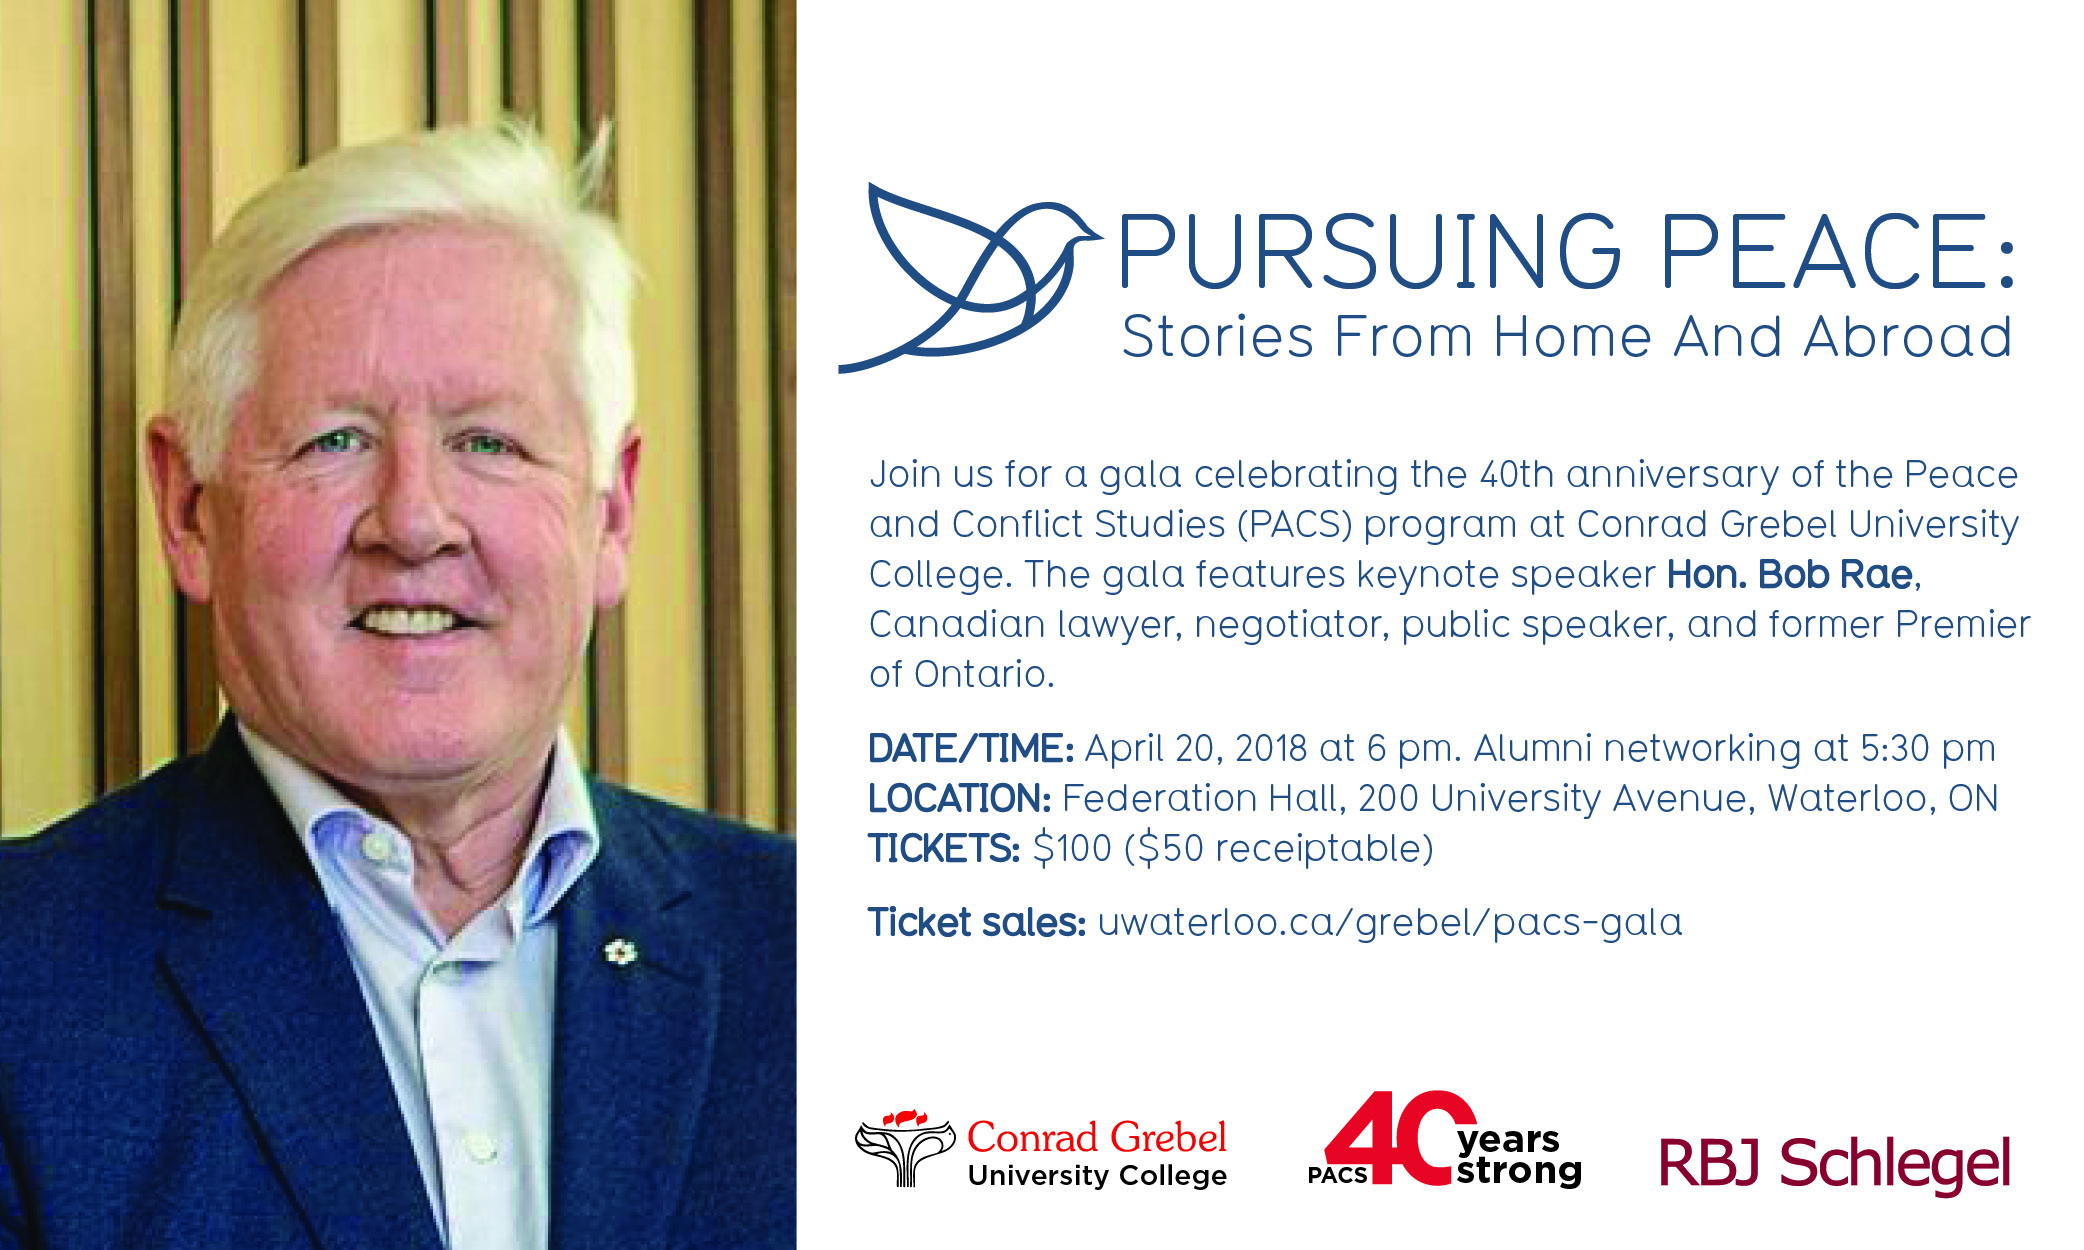 Pursuing Peace graphic with image of Bob Rae